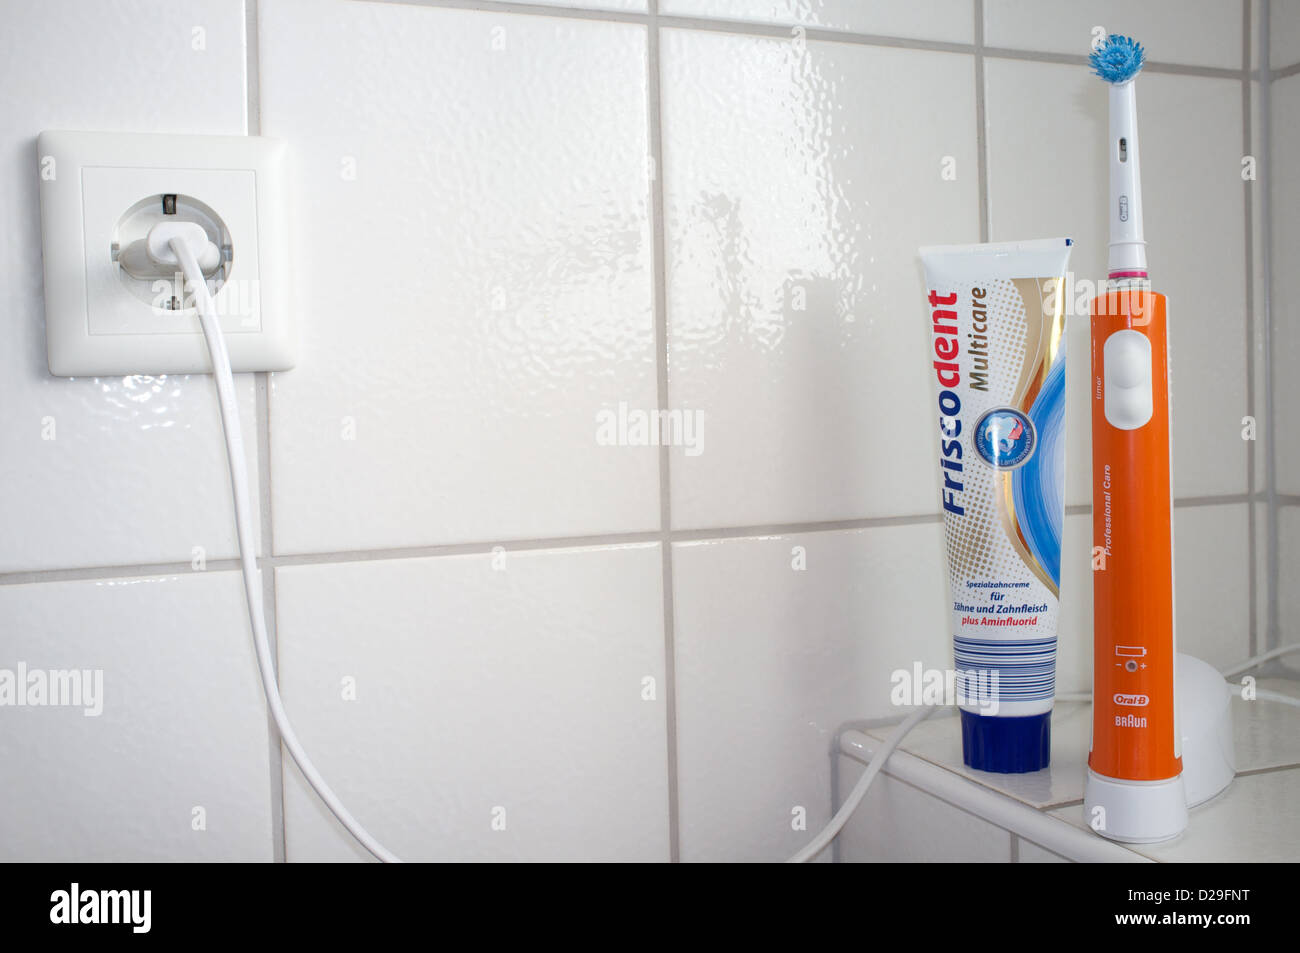 Braun Oral-B electric toothbrush - Stock Image